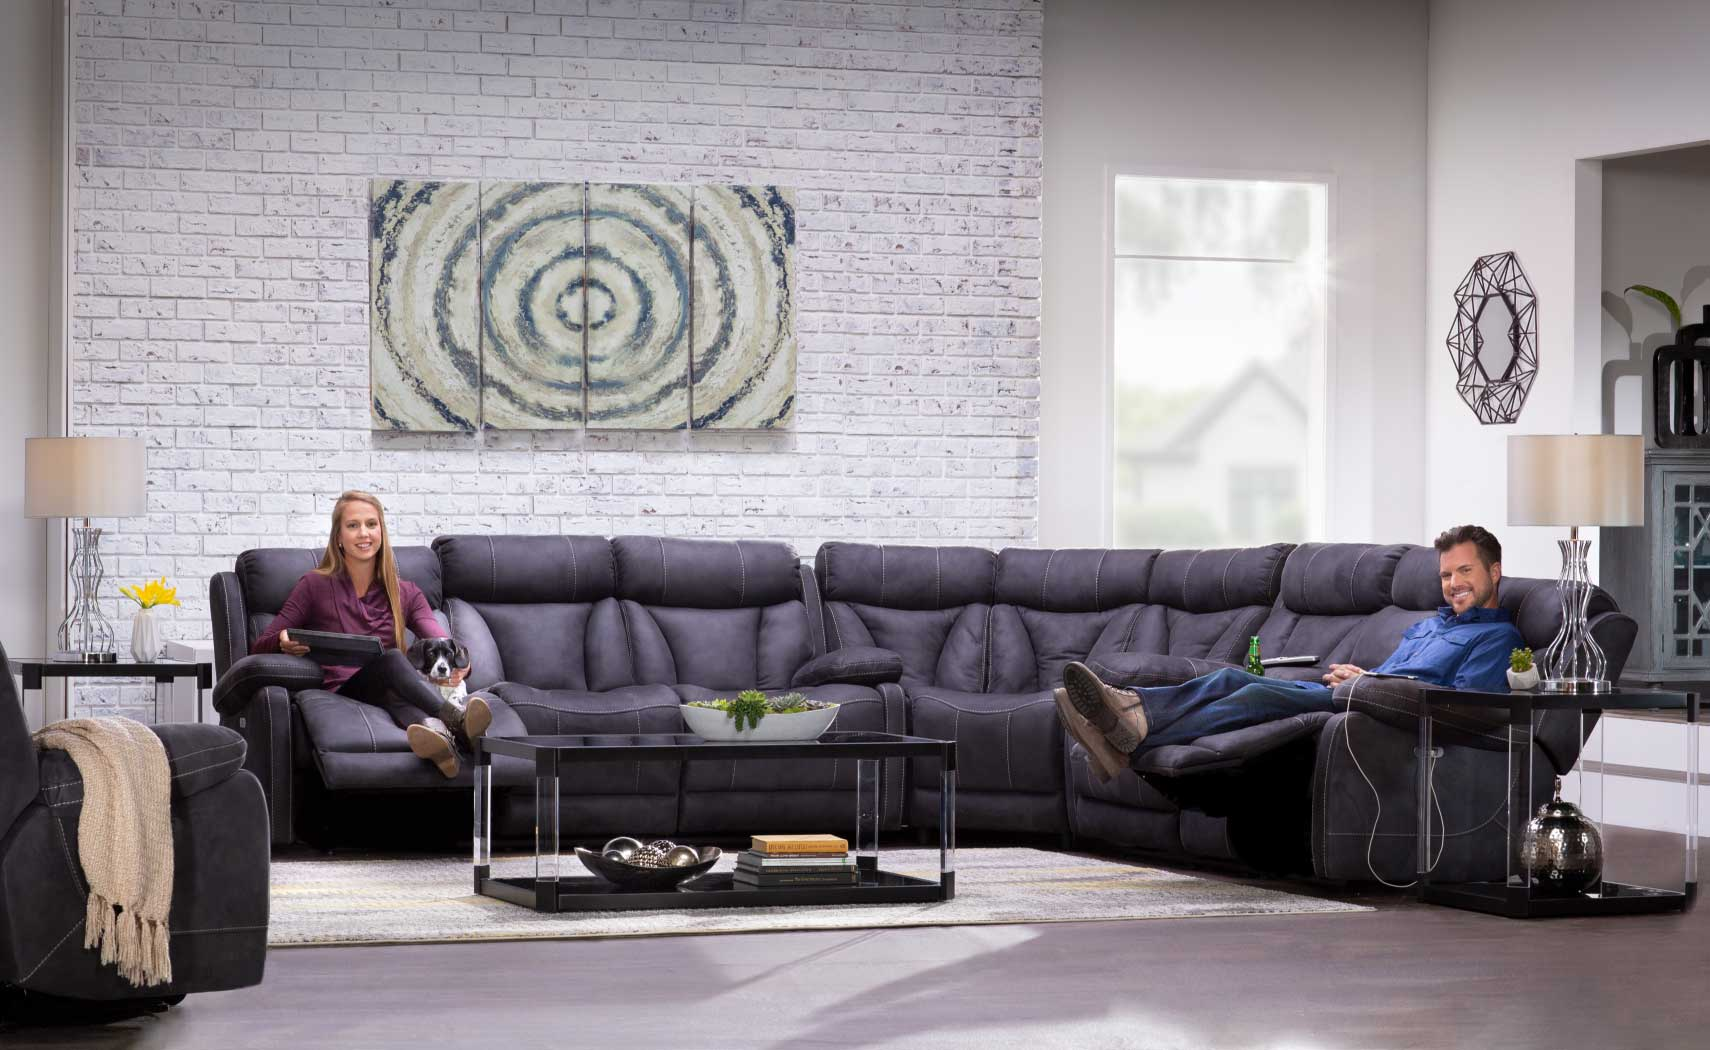 Borwich collection: dark grey reclining furniture